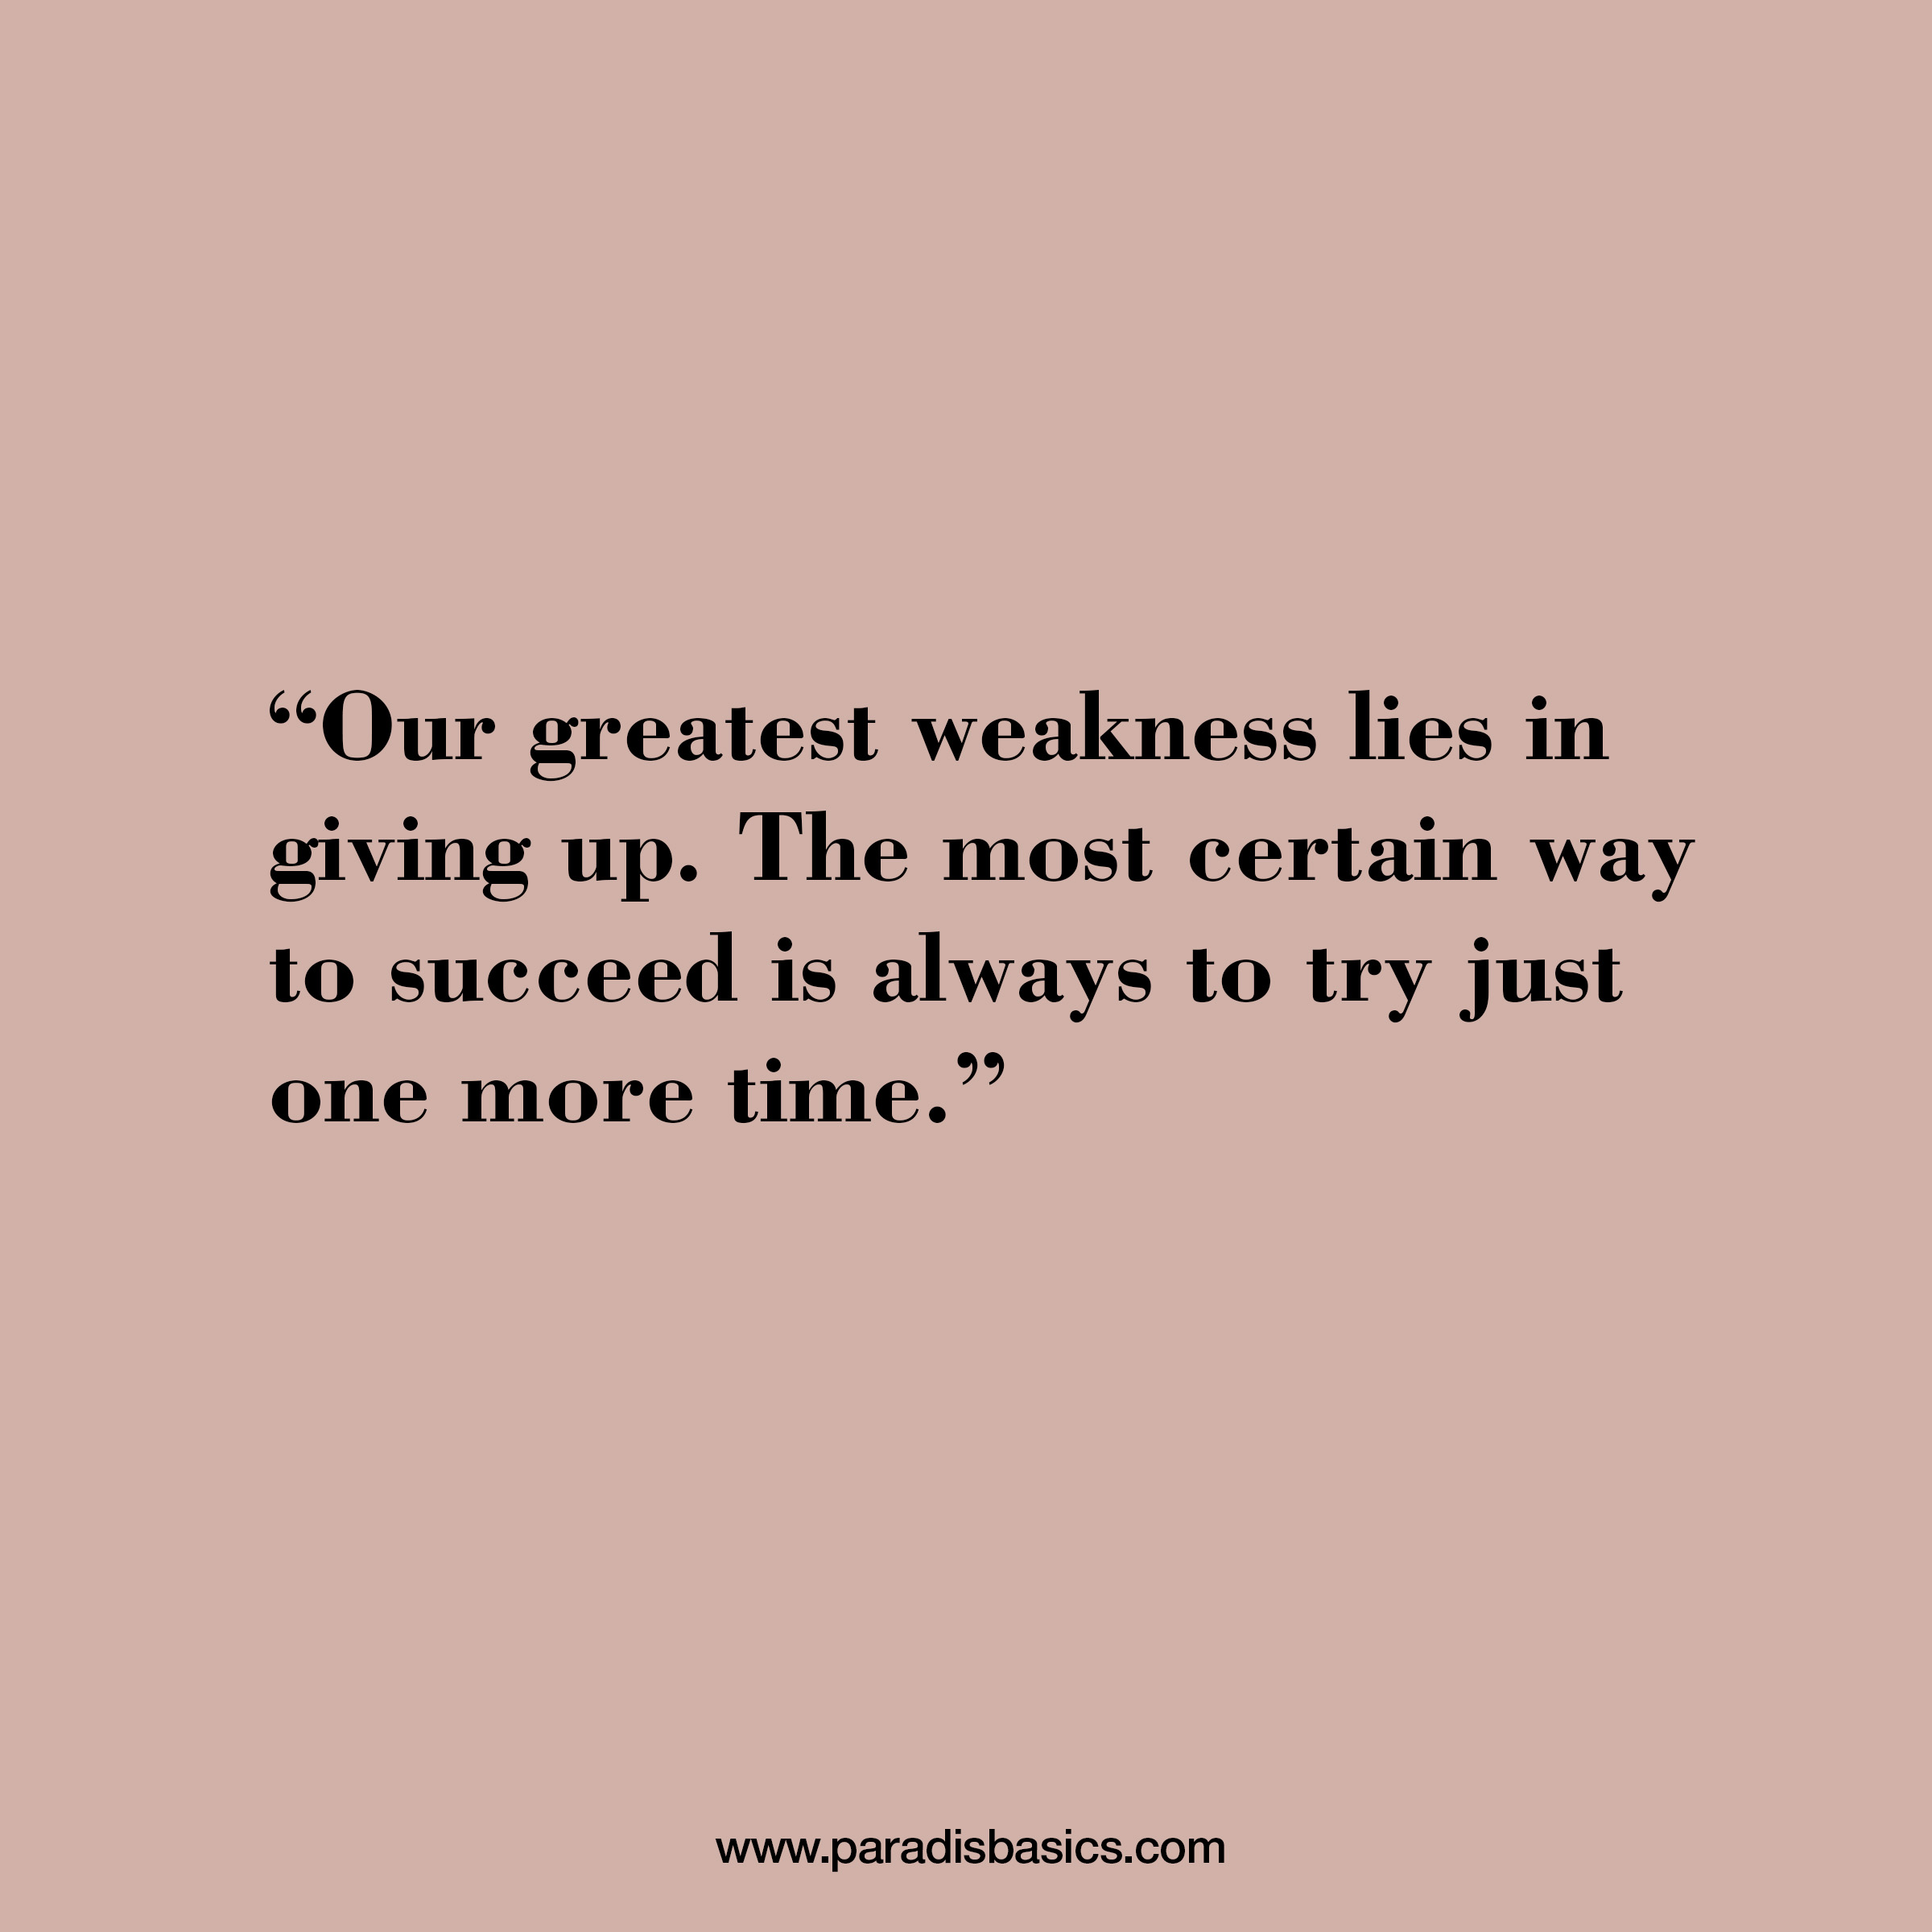 """""""Our greatest weakness lies in giving up. The most certain way to succeed is always to try just one more time."""""""